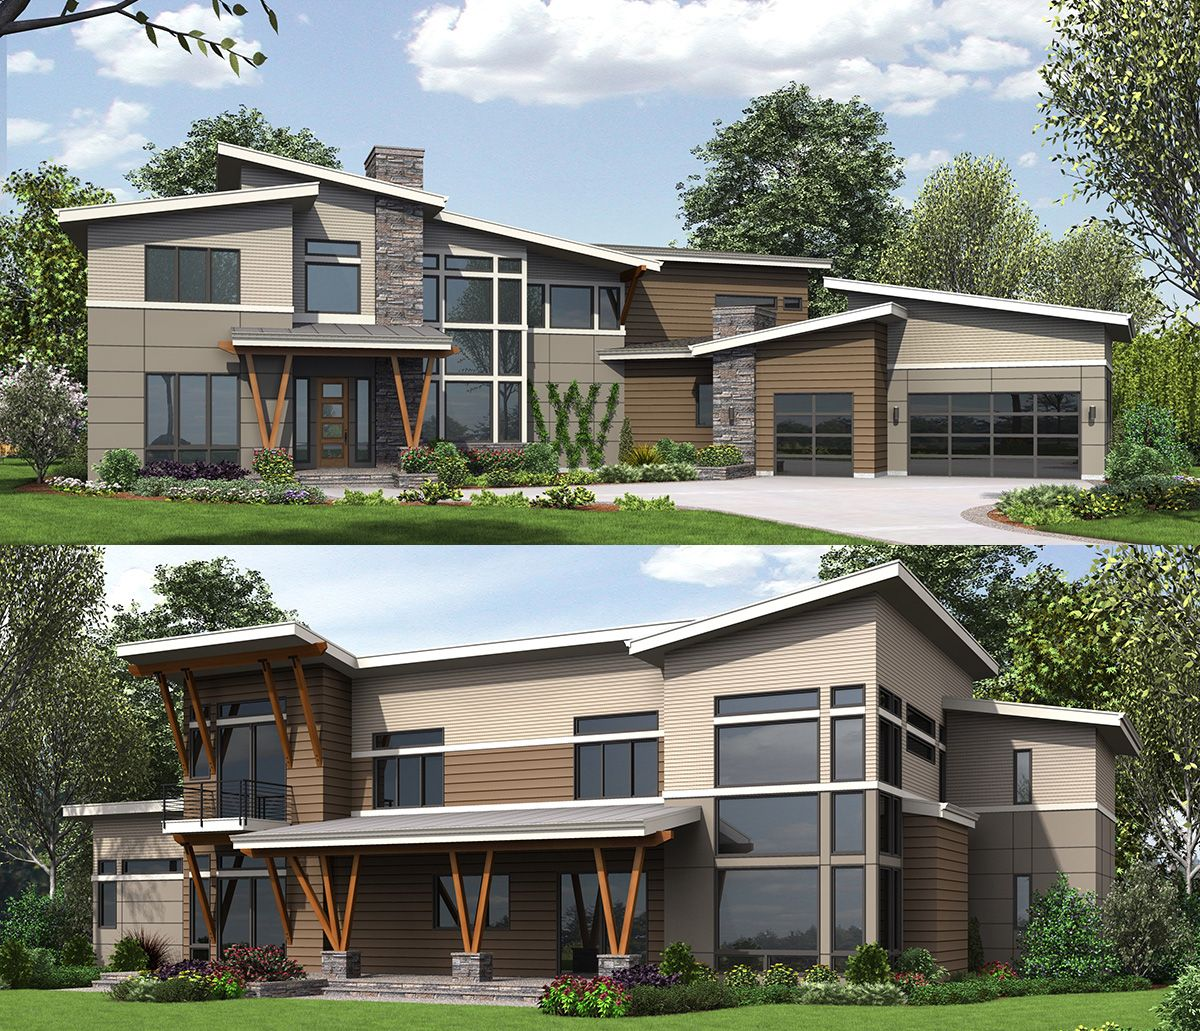 ^ 1000+ images about House on Pinterest